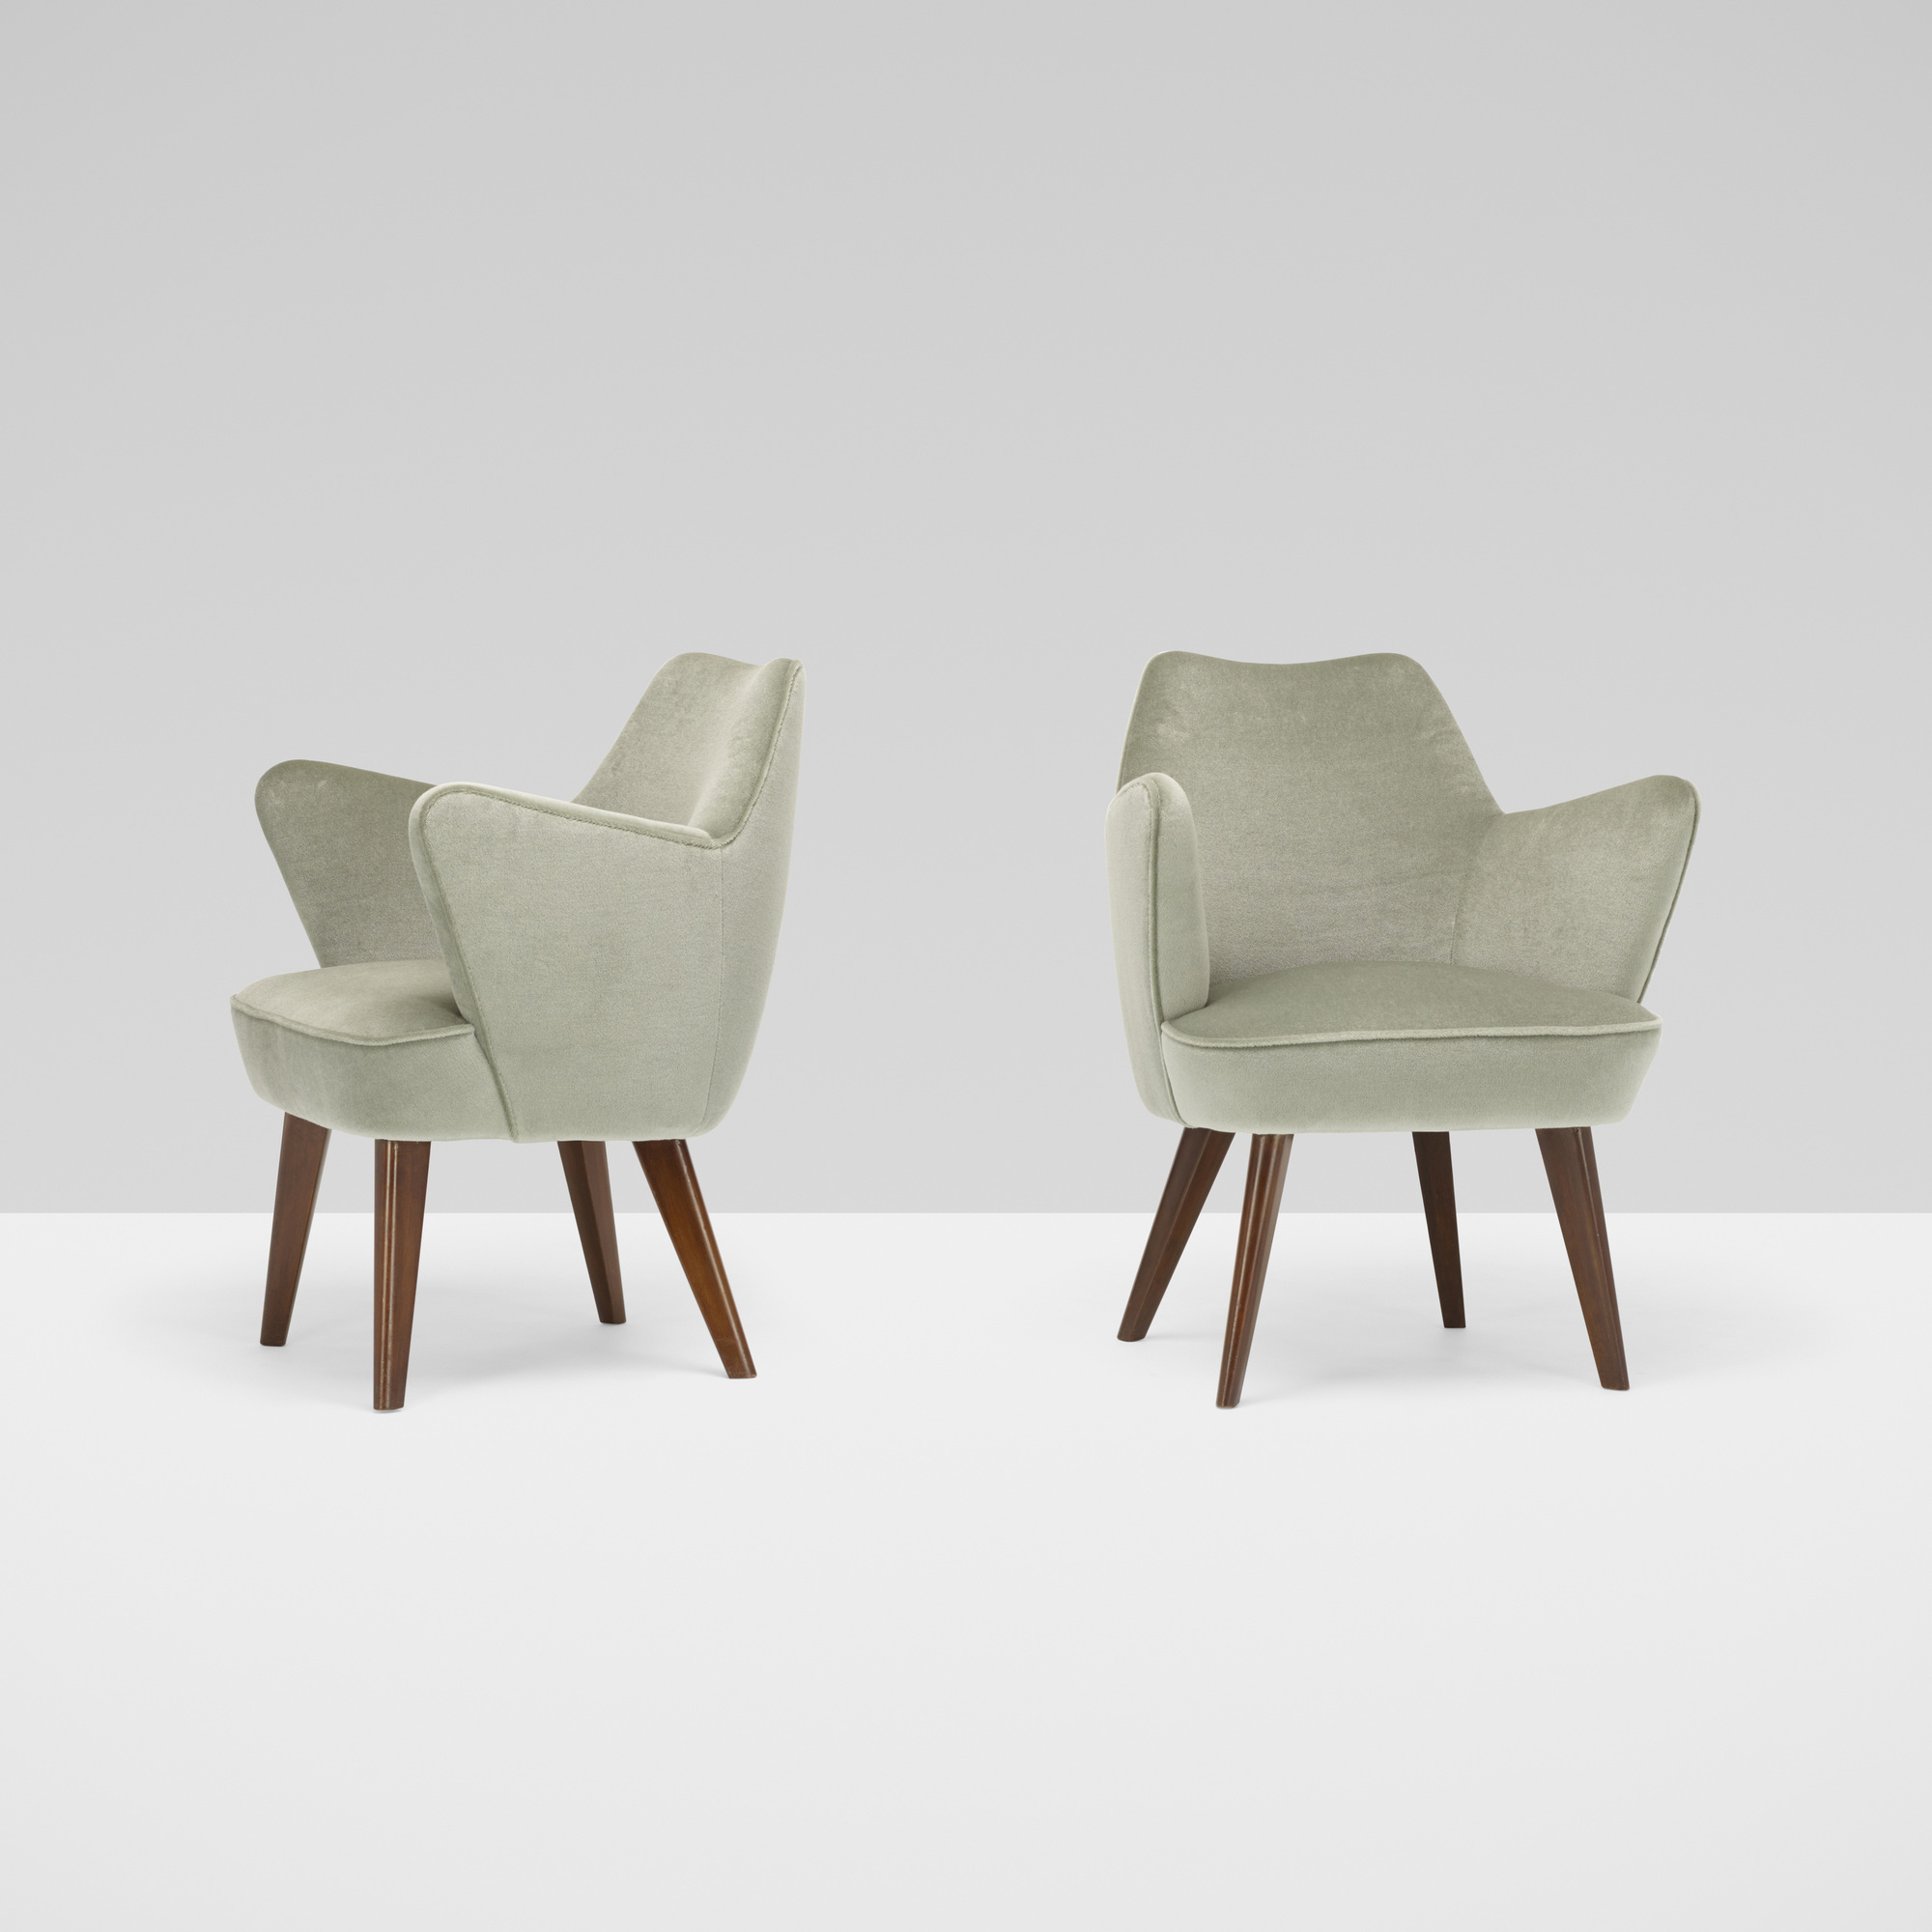 233: Gio Ponti / pair of armchairs from the Augustus Ocean Liner (2 of 3)